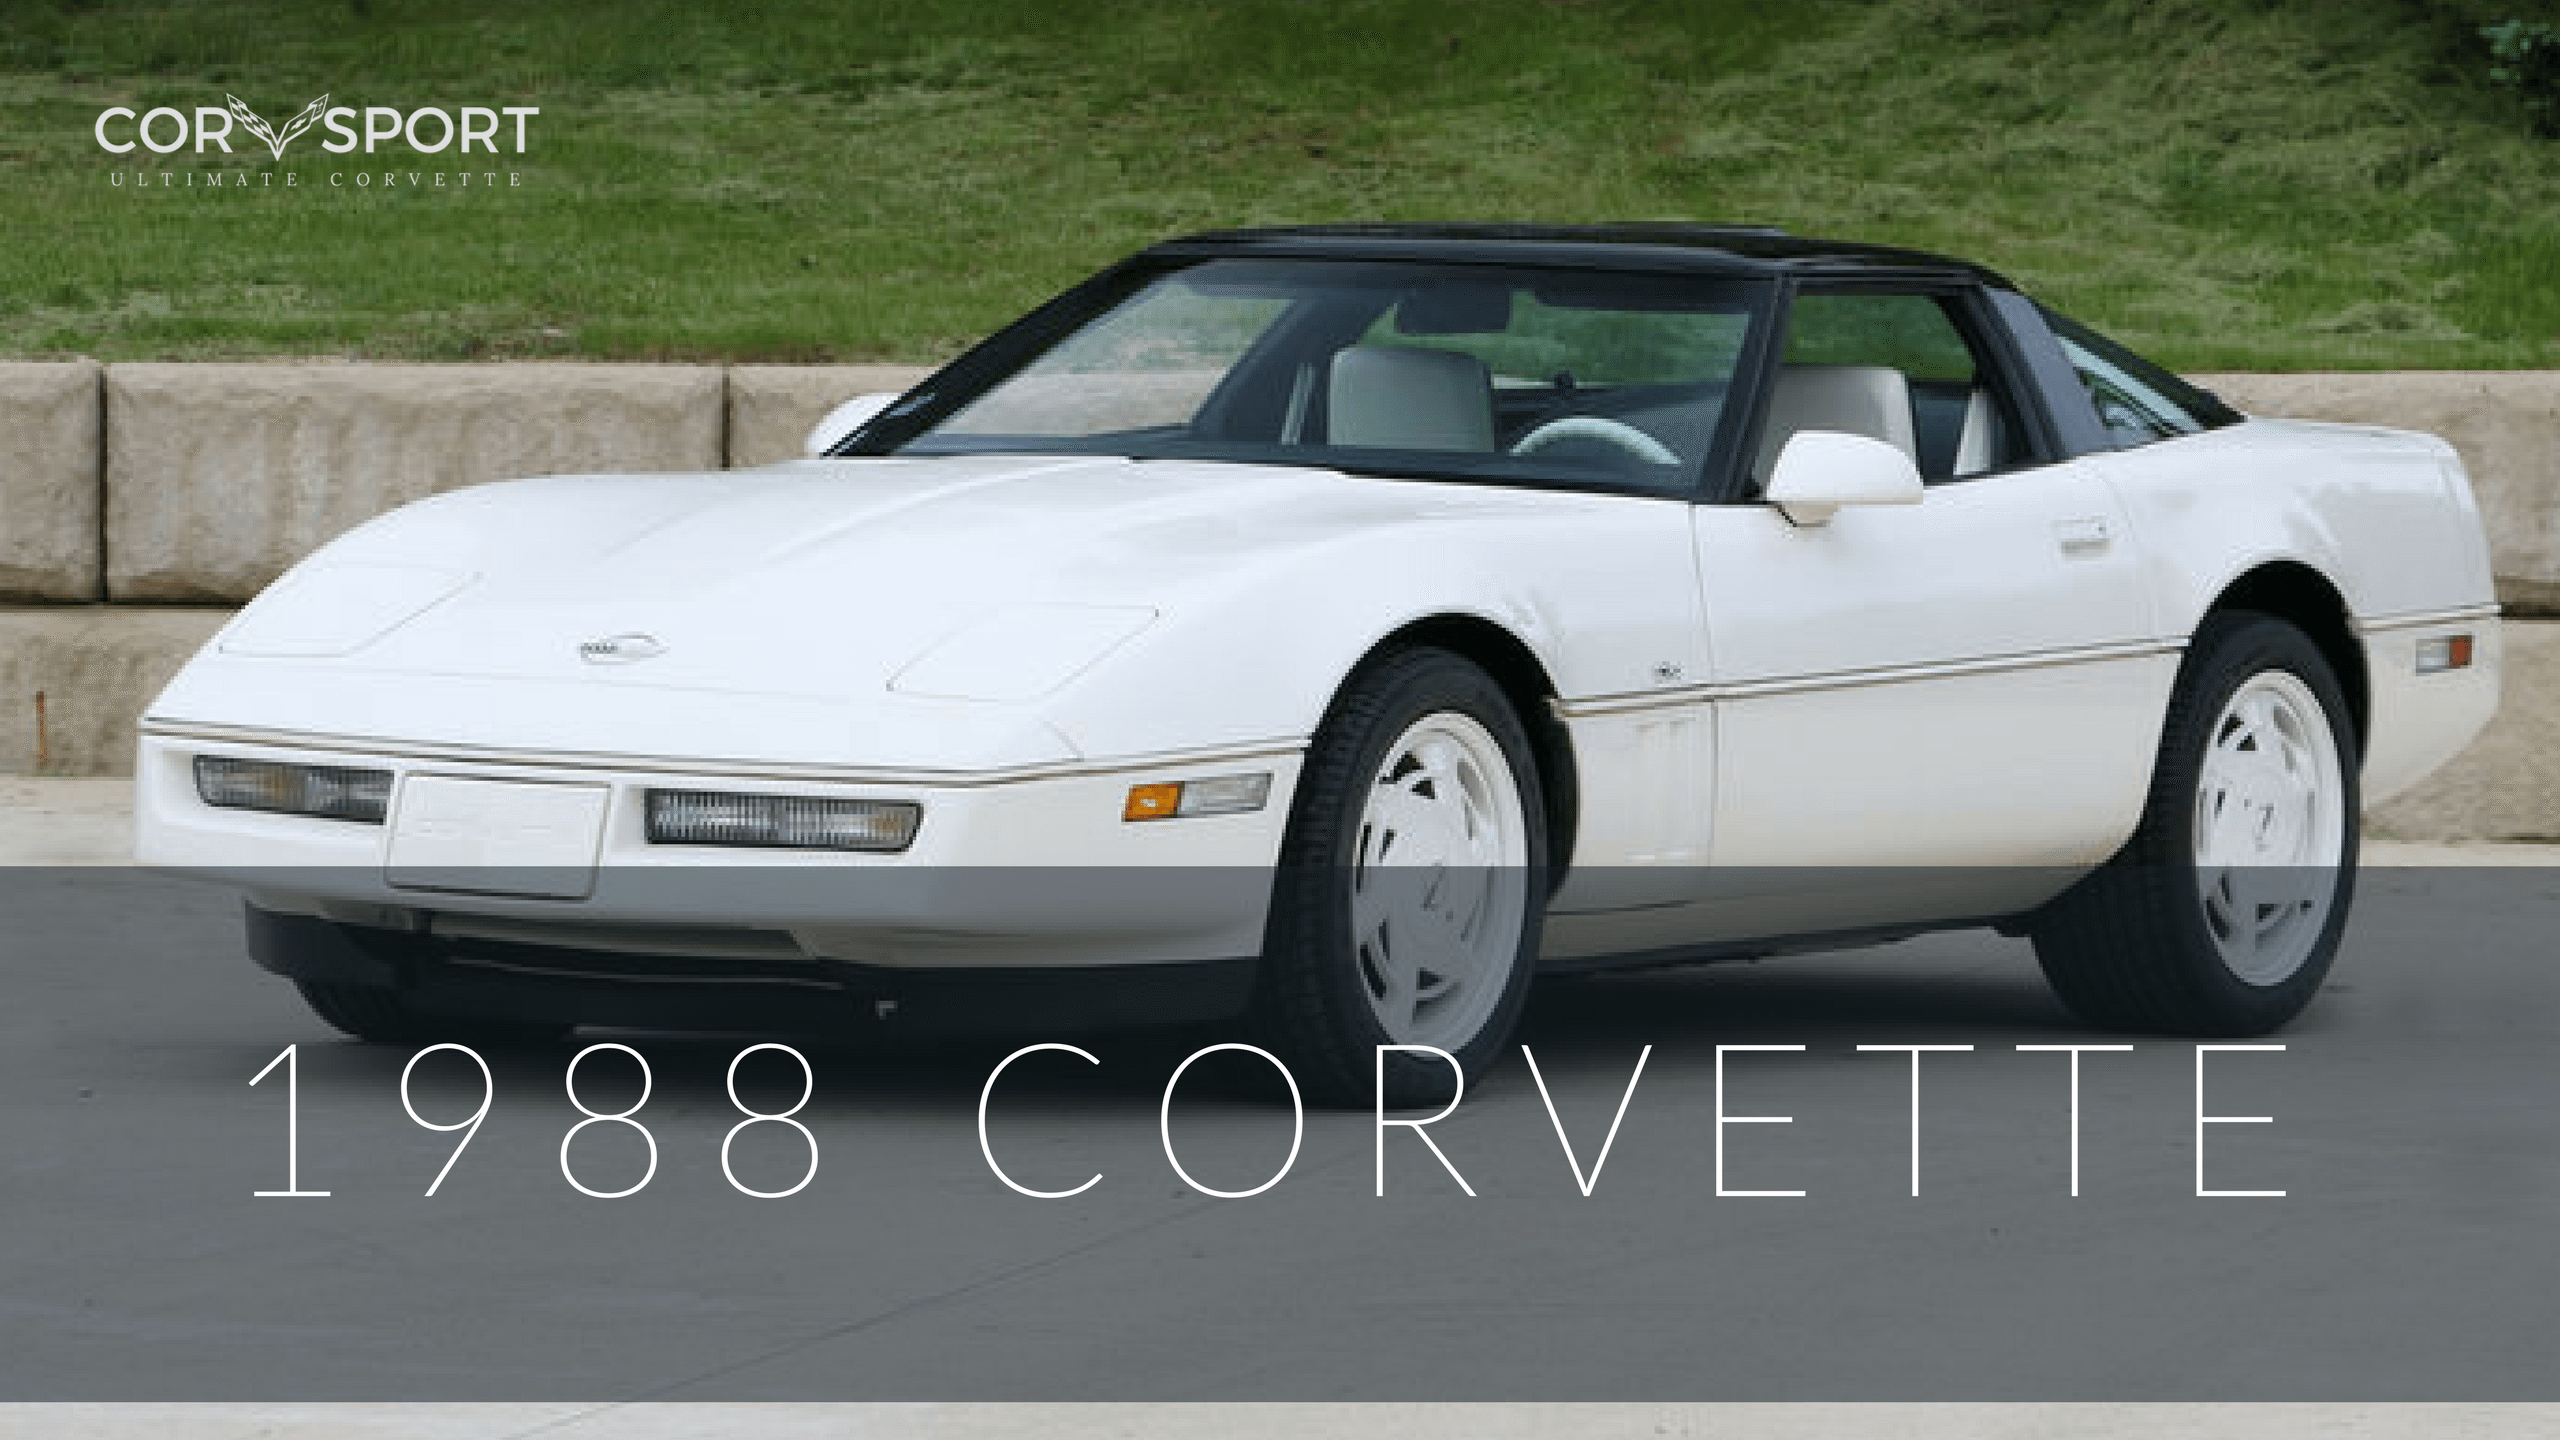 1988 c4 corvette ultimate guide overview specs vin info rh corvsport com 88 corvette owners manual 88 corvette manual transmission